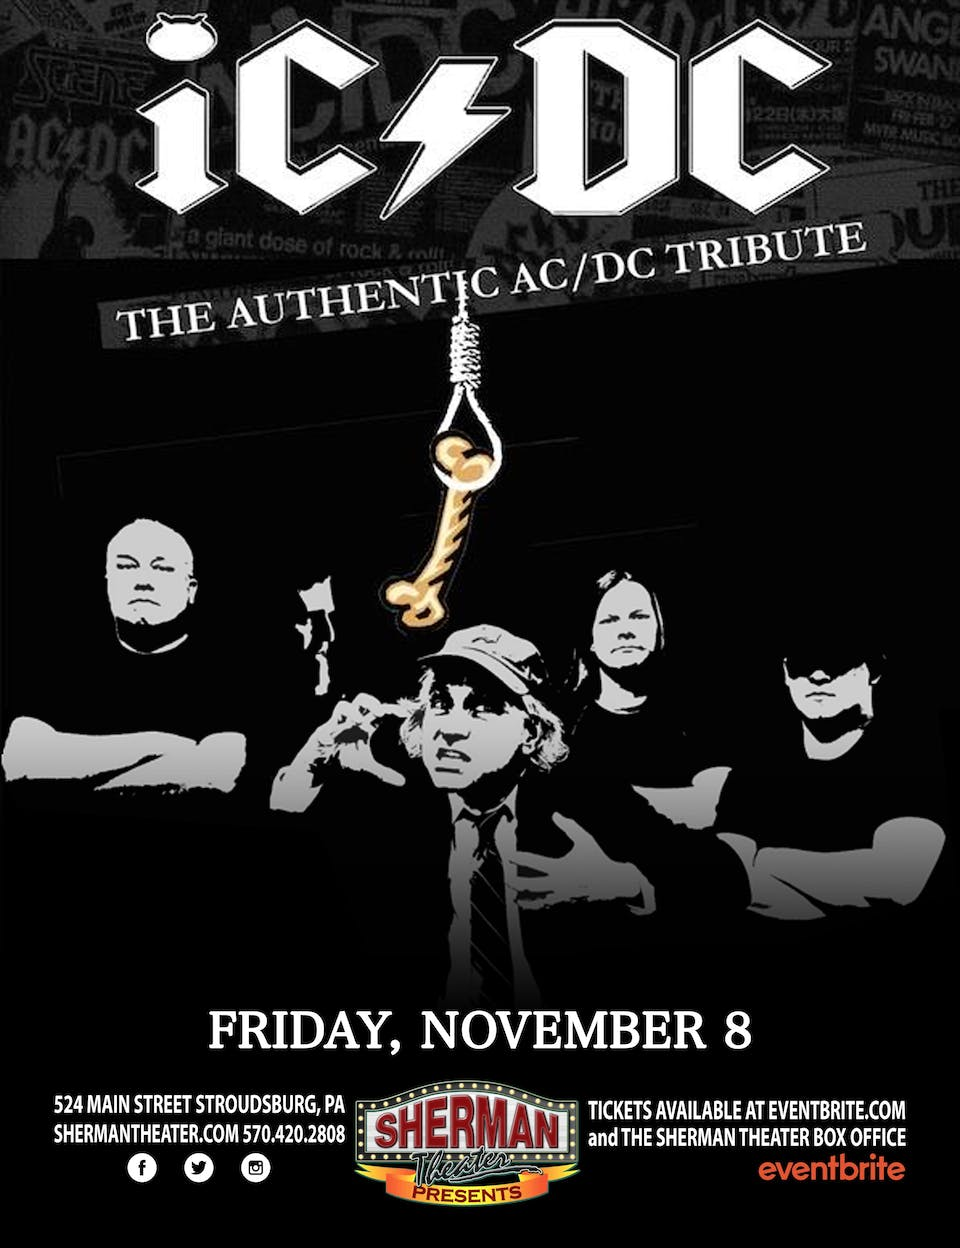 iC/DC - The Authentic AC/DC Tribute